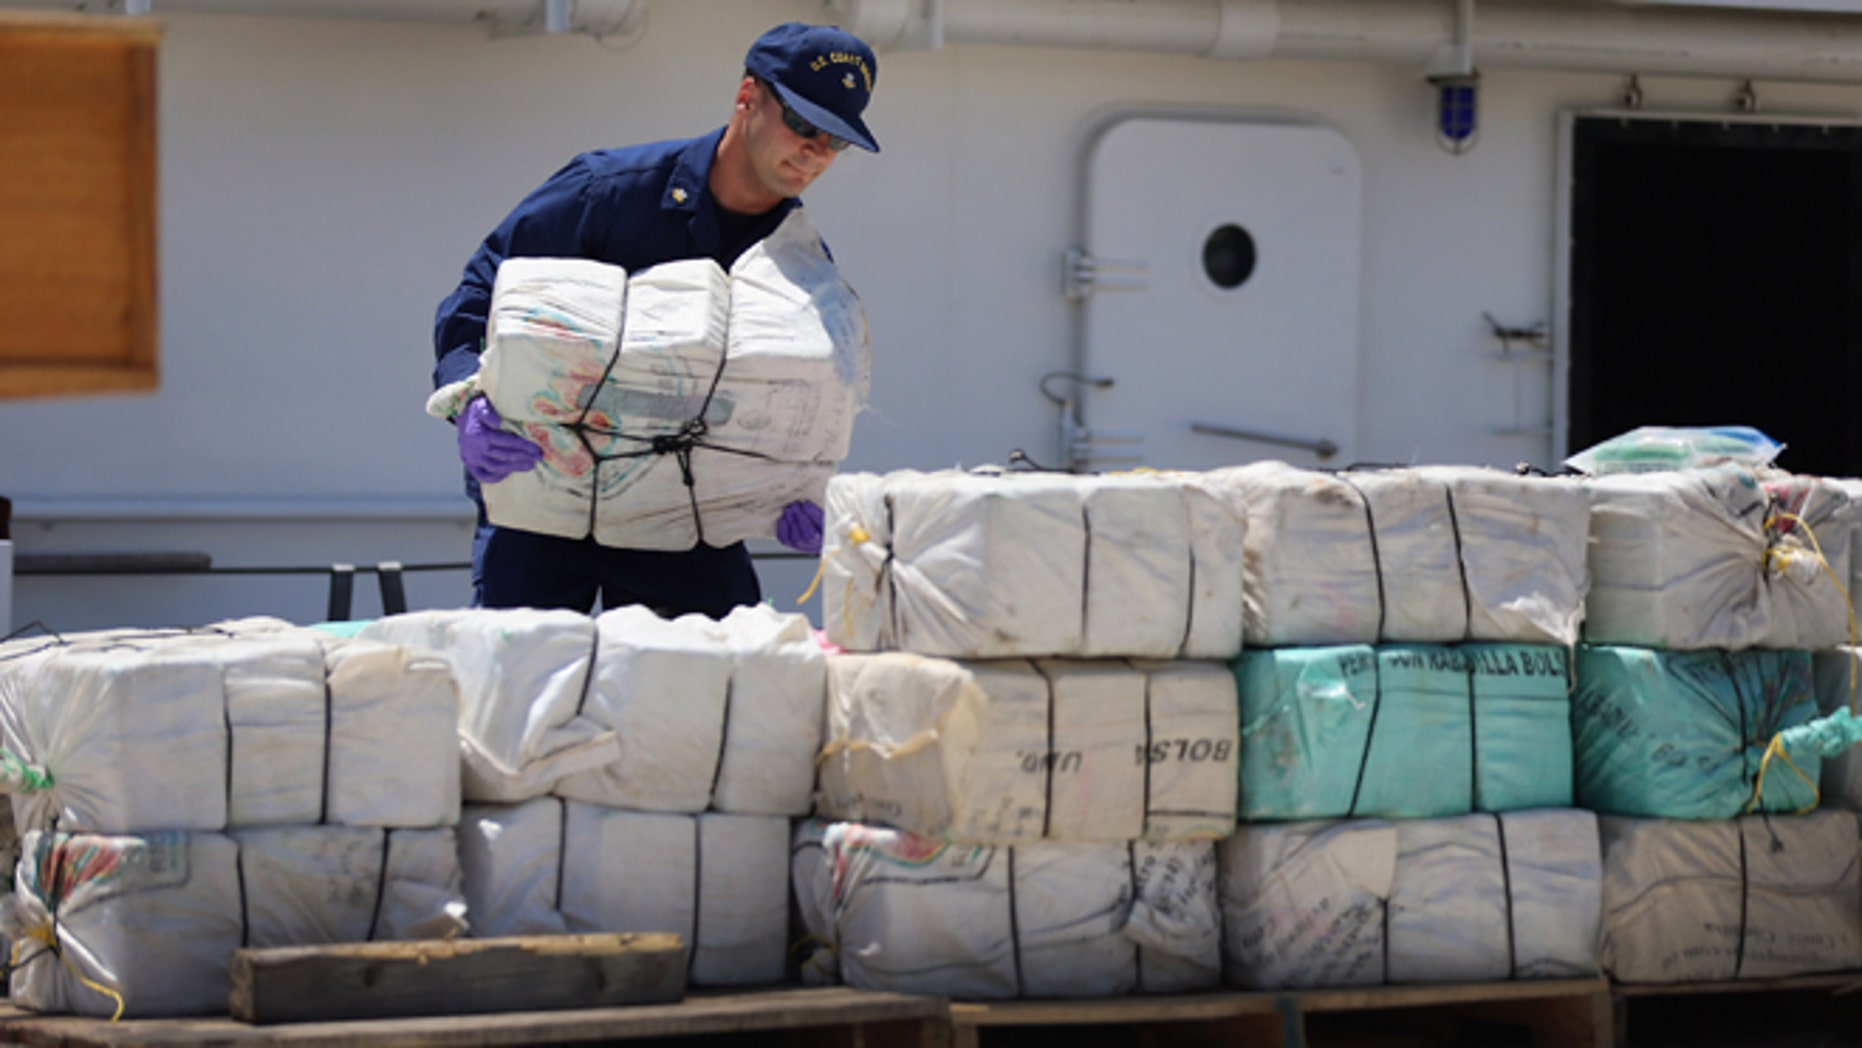 MIAMI, FL - APRIL 26:  A crew member from the Coast Guard Cutter Bernard C. Webber piles up some of the 2,200 pounds of cocaine after it was seized during Operation Martillo, worth an estimated $27 million on April 26, 2013 in Miami, Florida. The cocaine was found while the crew was conducting a law enforcement patrol, where they located a 68-foot fishing vessel in the western Caribbean Sea, April 18, 2013. The crew of the Cutter Gallatin boarded the vessel, located 2,200 pounds of cocaine, and detained three suspected smugglers.  (Photo by Joe Raedle/Getty Images)